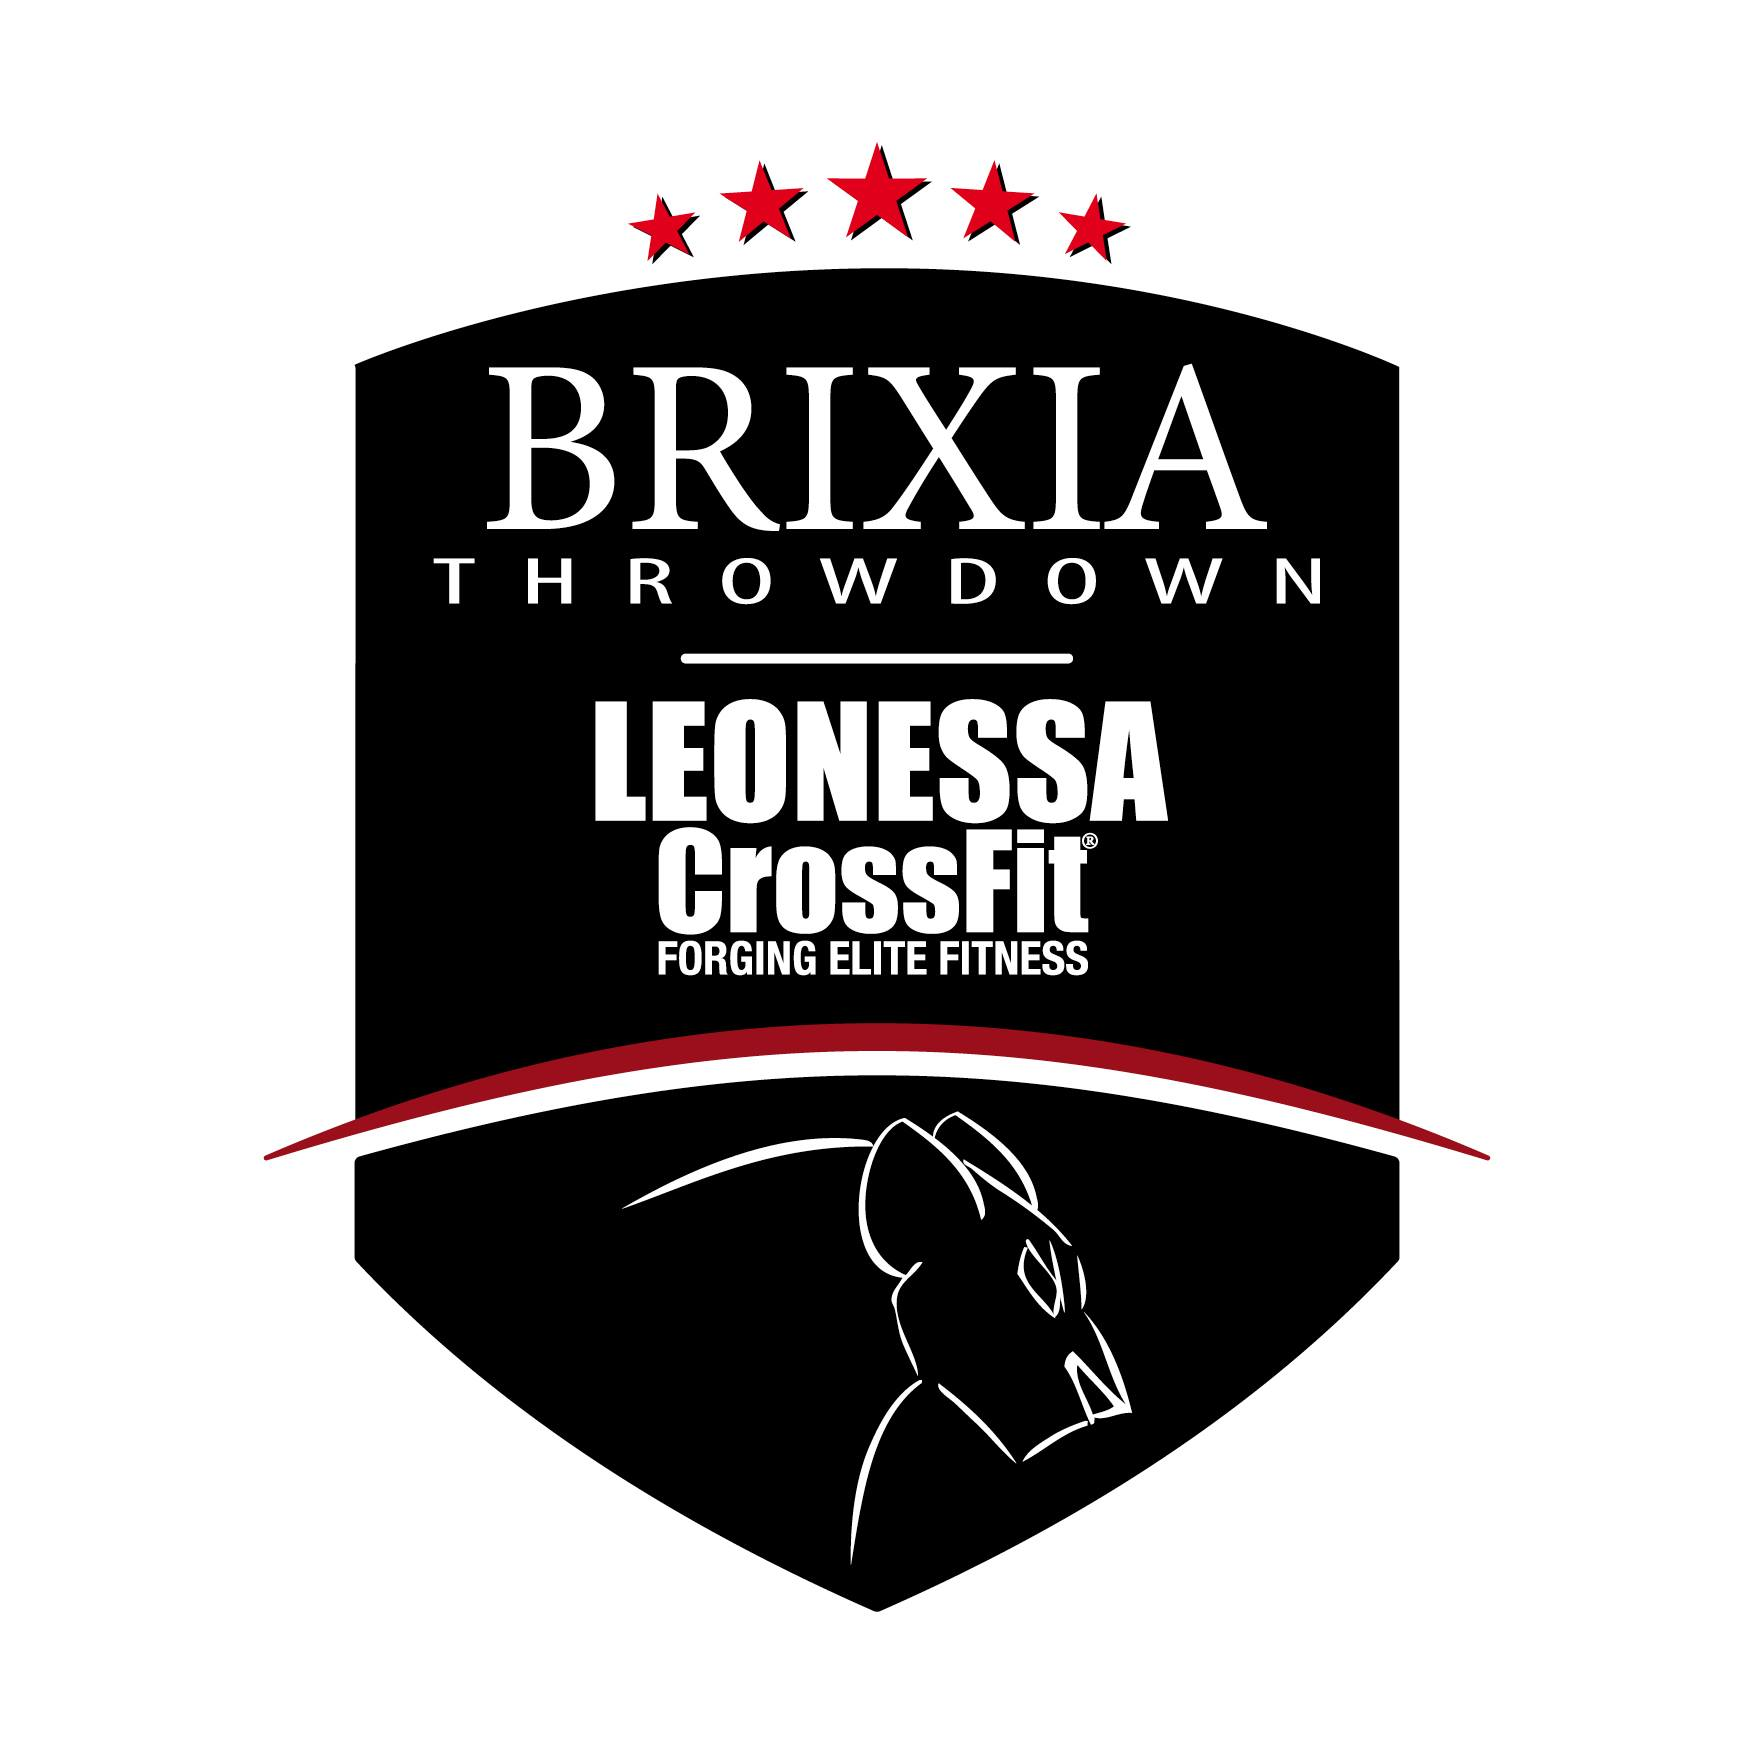 Brixia Throwdown 2018